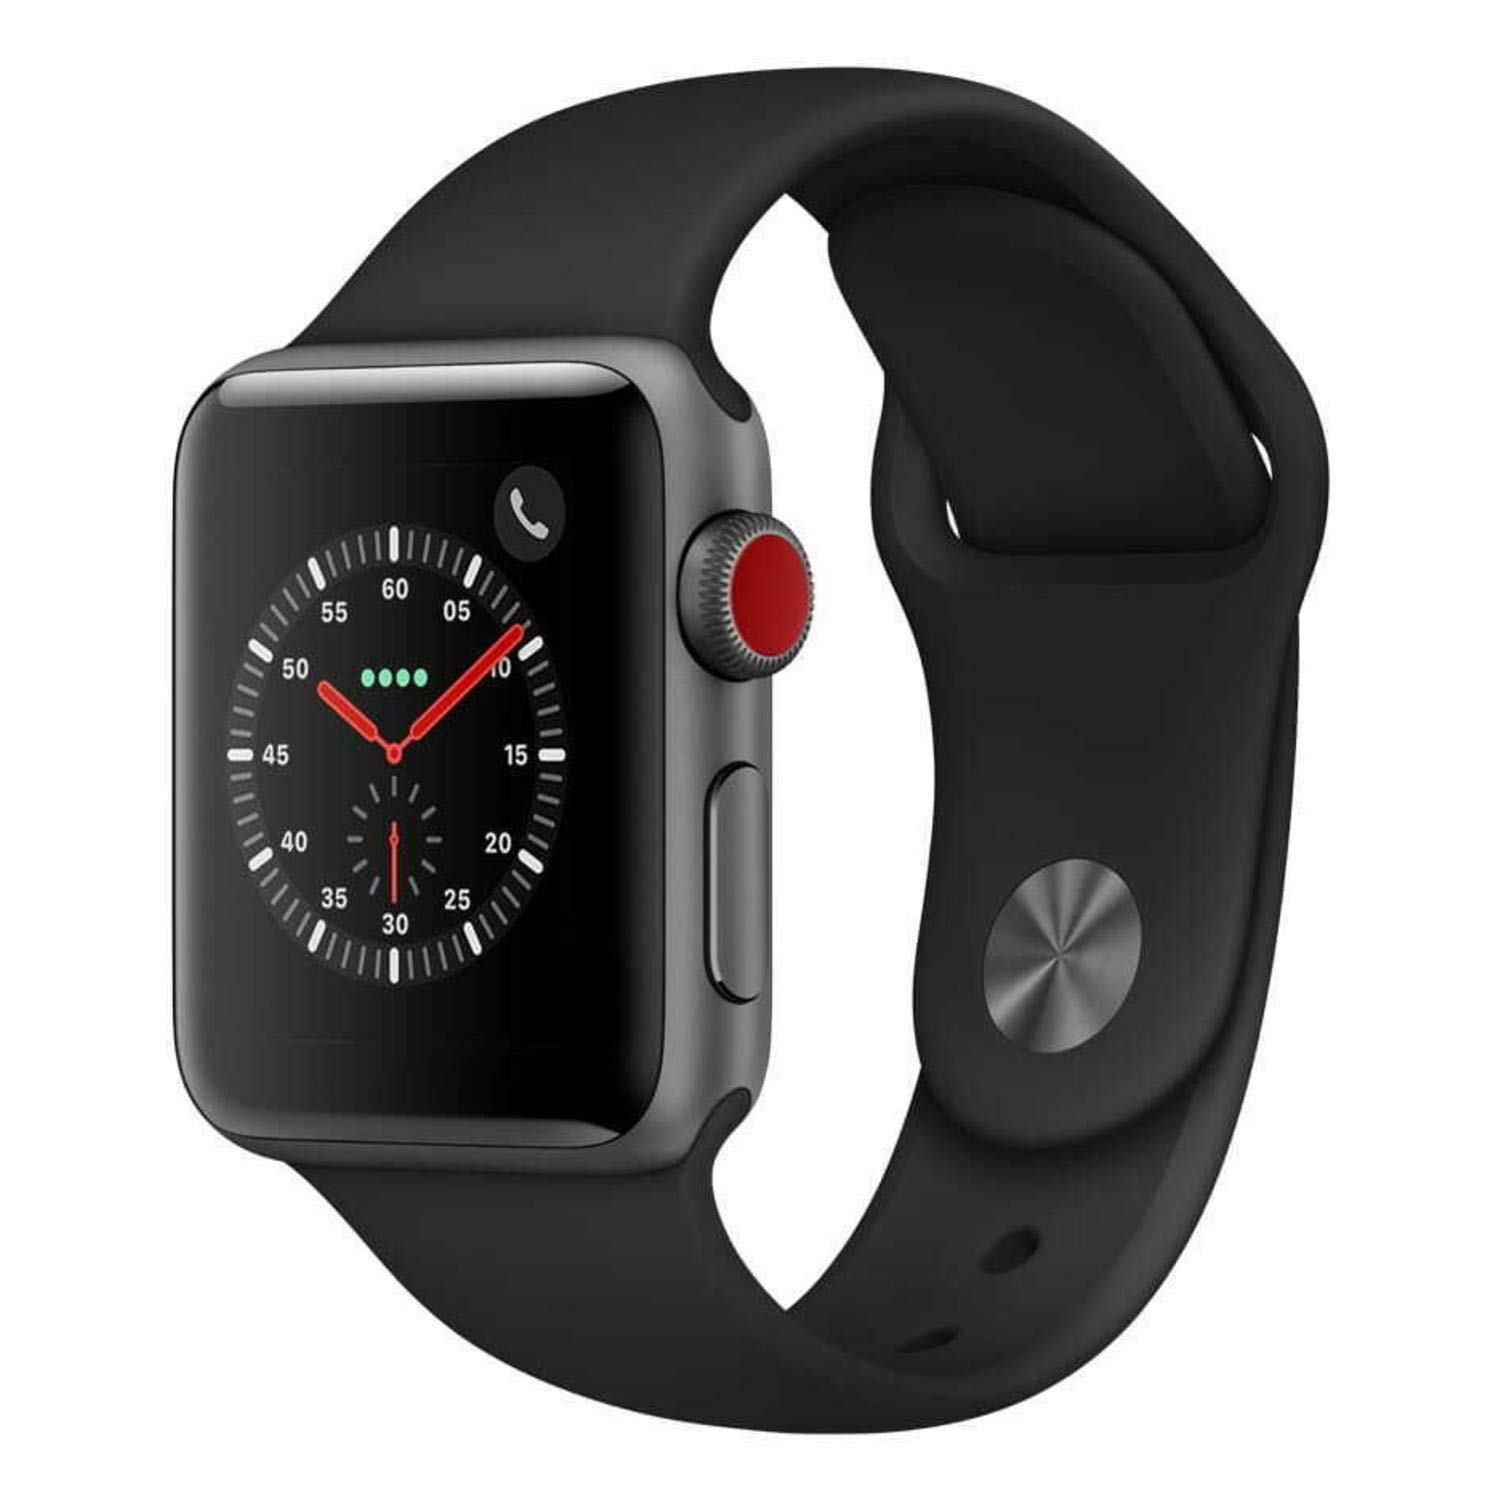 Apple Watch Series 3 42mm Smartwatch (GPS + Cellular, Space Gray Aluminum Case, Black Sport Band) (Renewed) by Apple